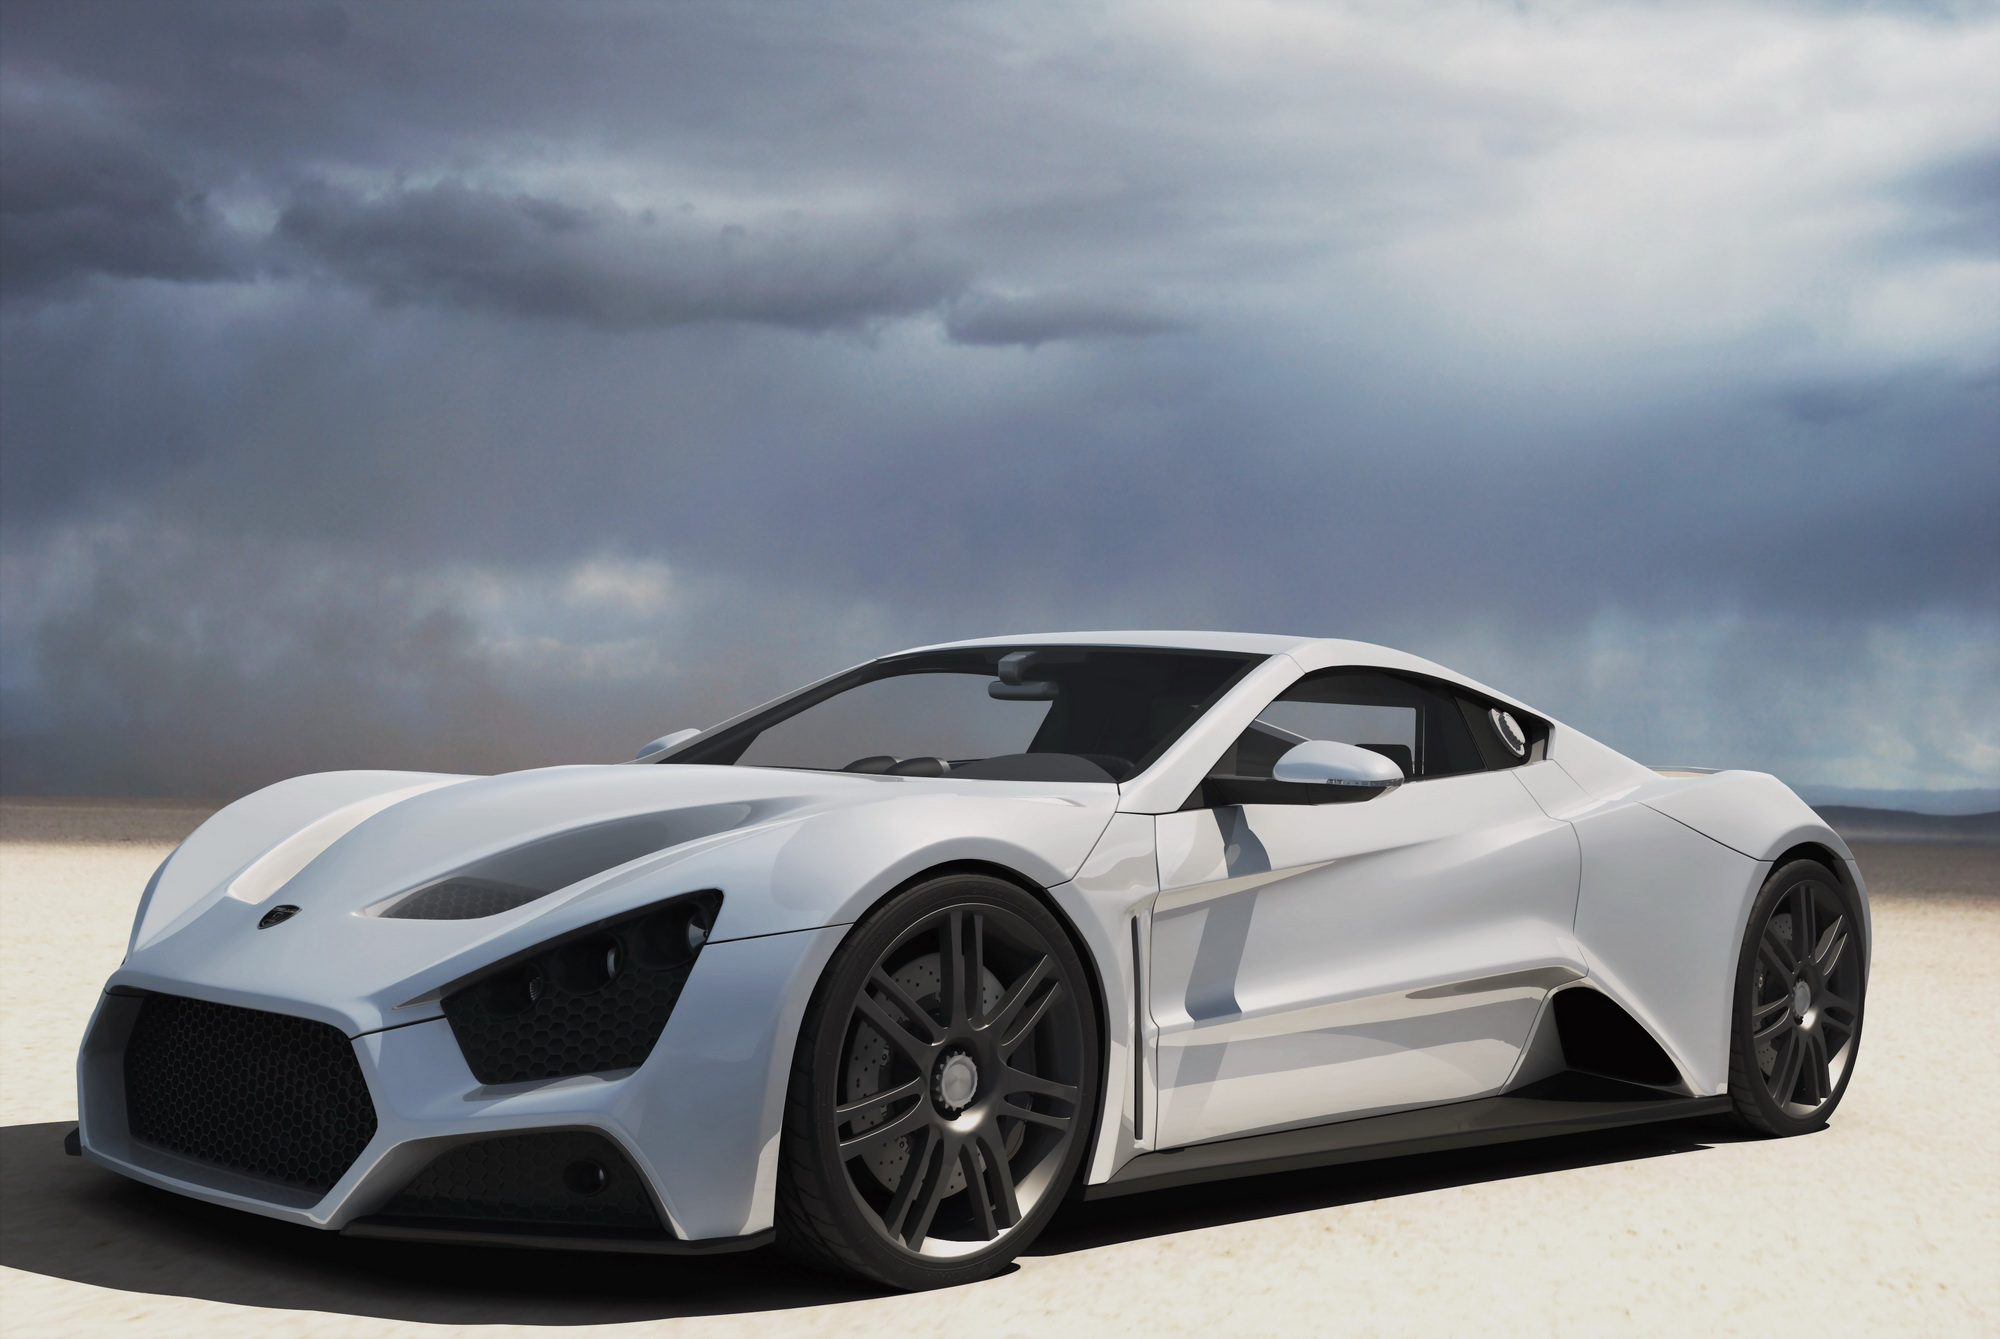 zenvo st1 d nischer mittelmotor sportler auf ps tuning. Black Bedroom Furniture Sets. Home Design Ideas